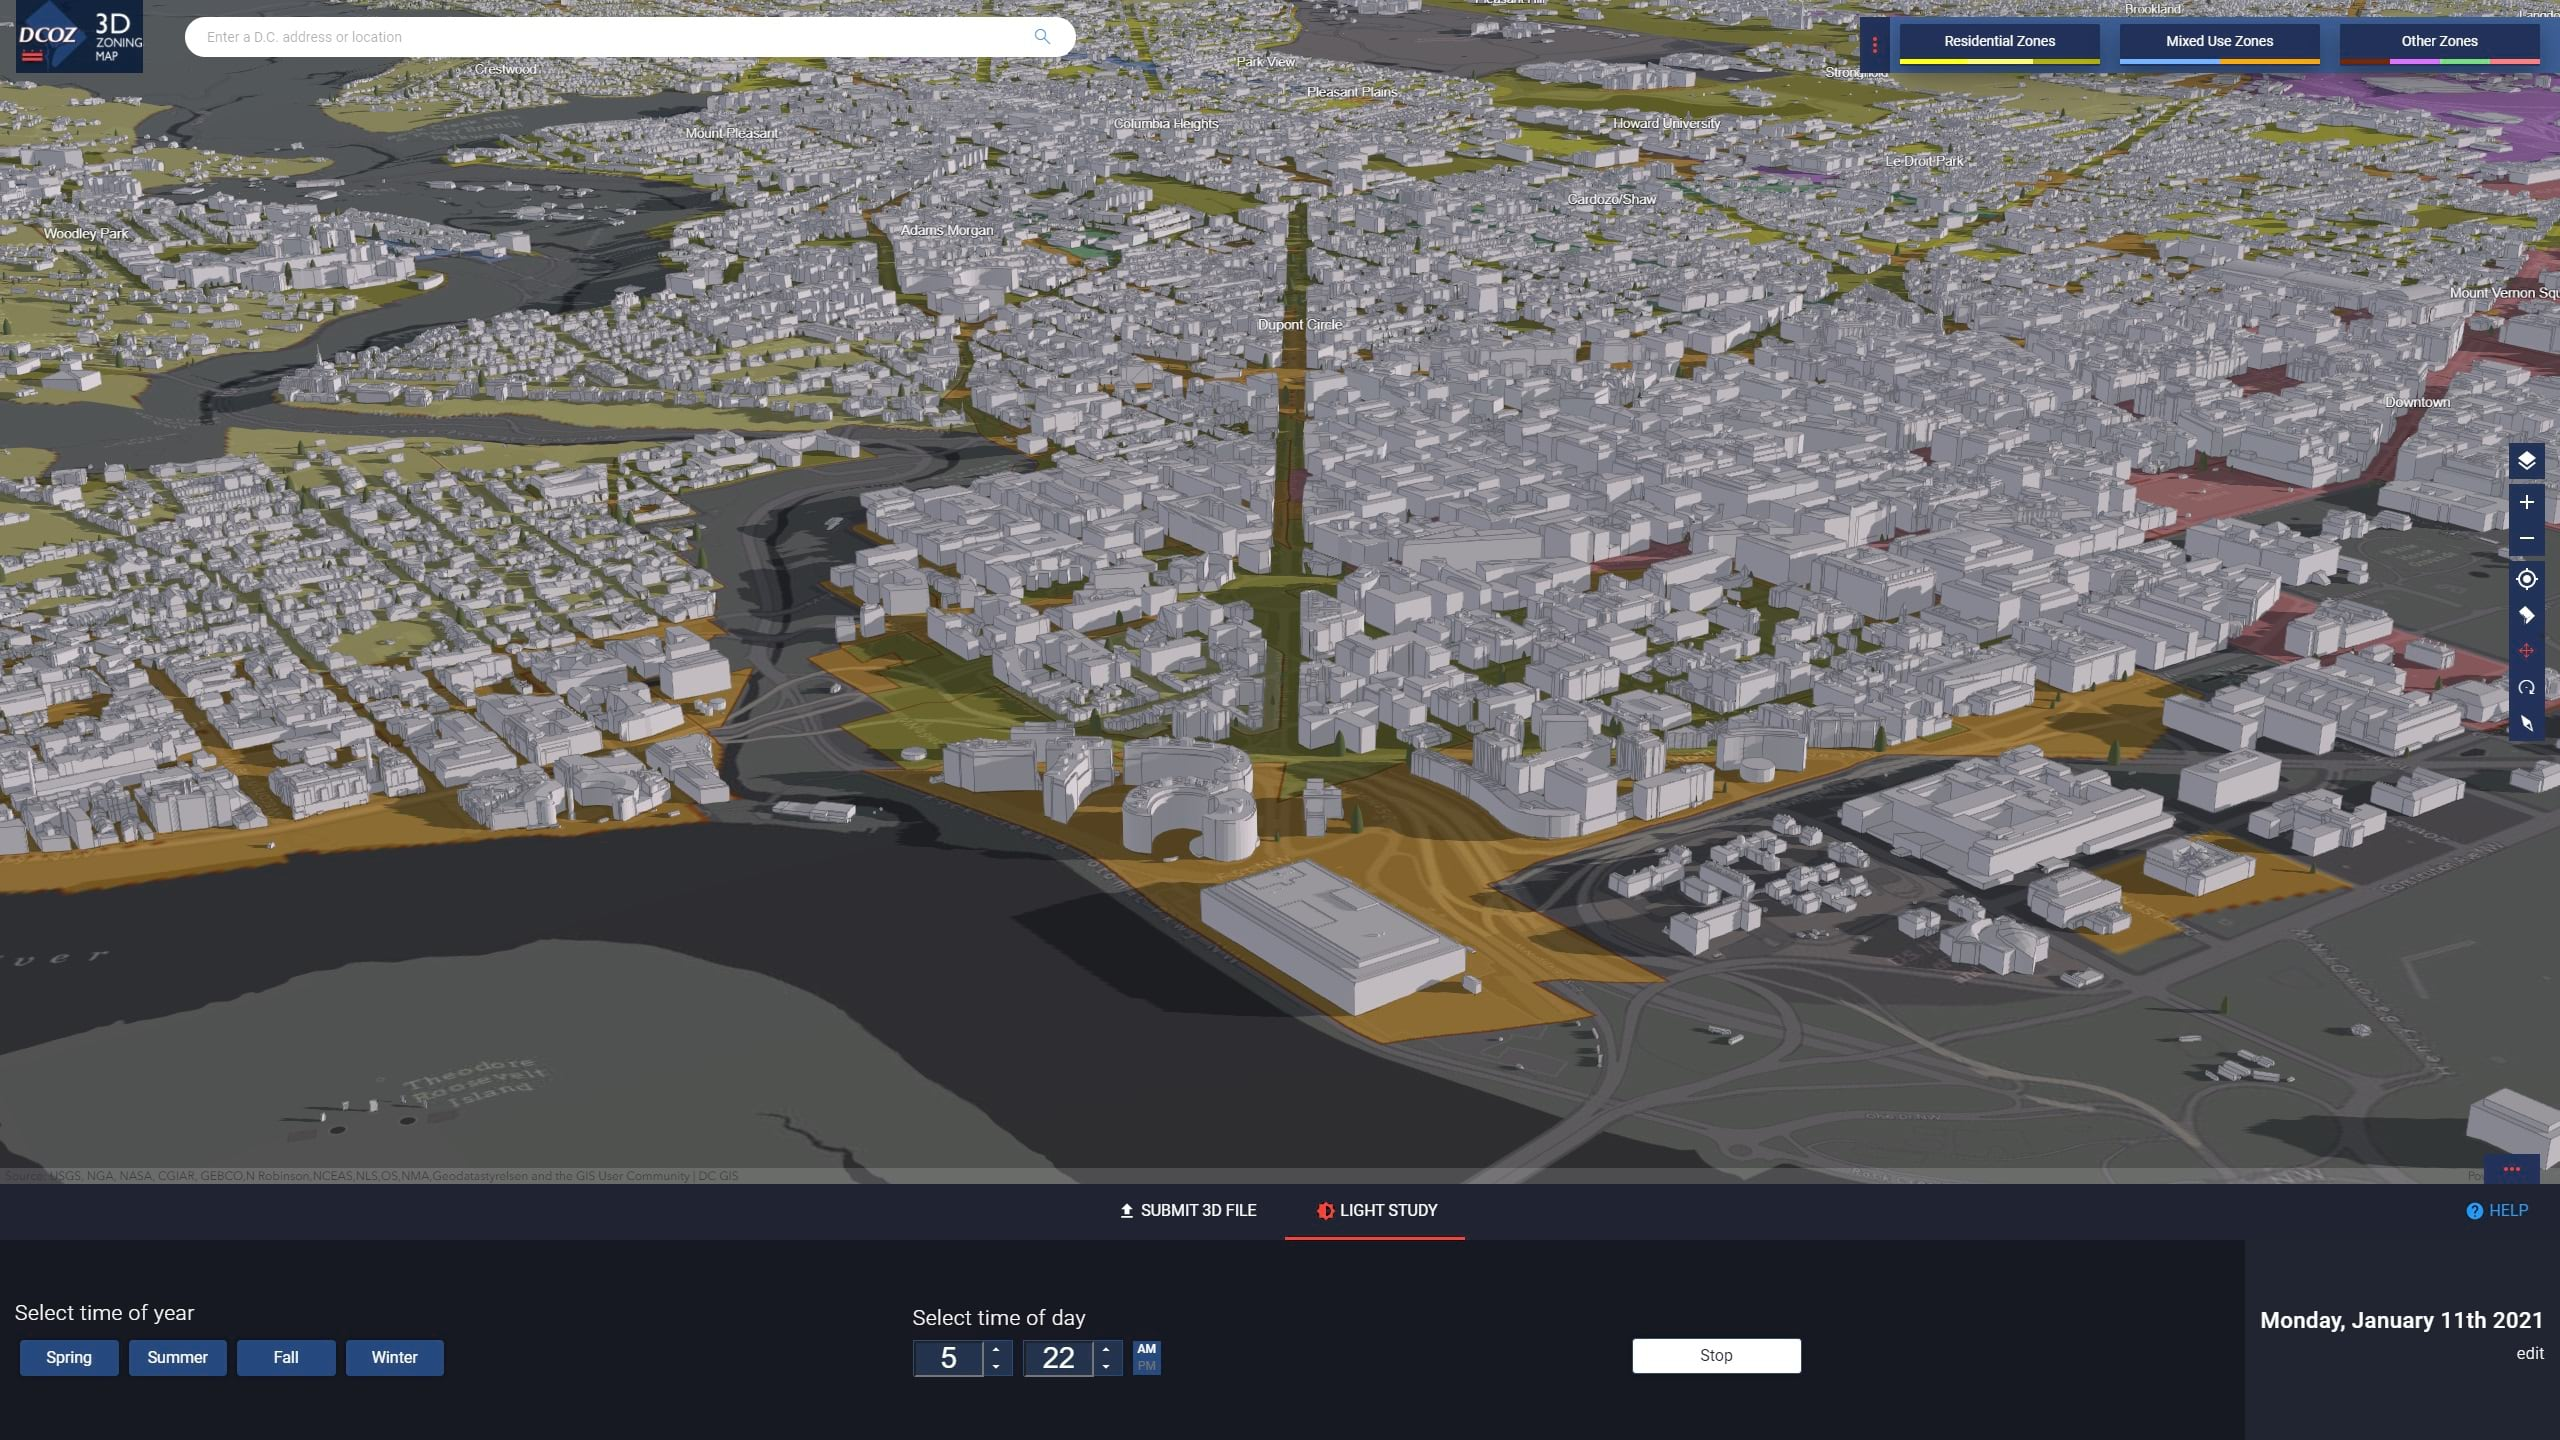 DC COZ 3D zoning tool uses ArcGIS